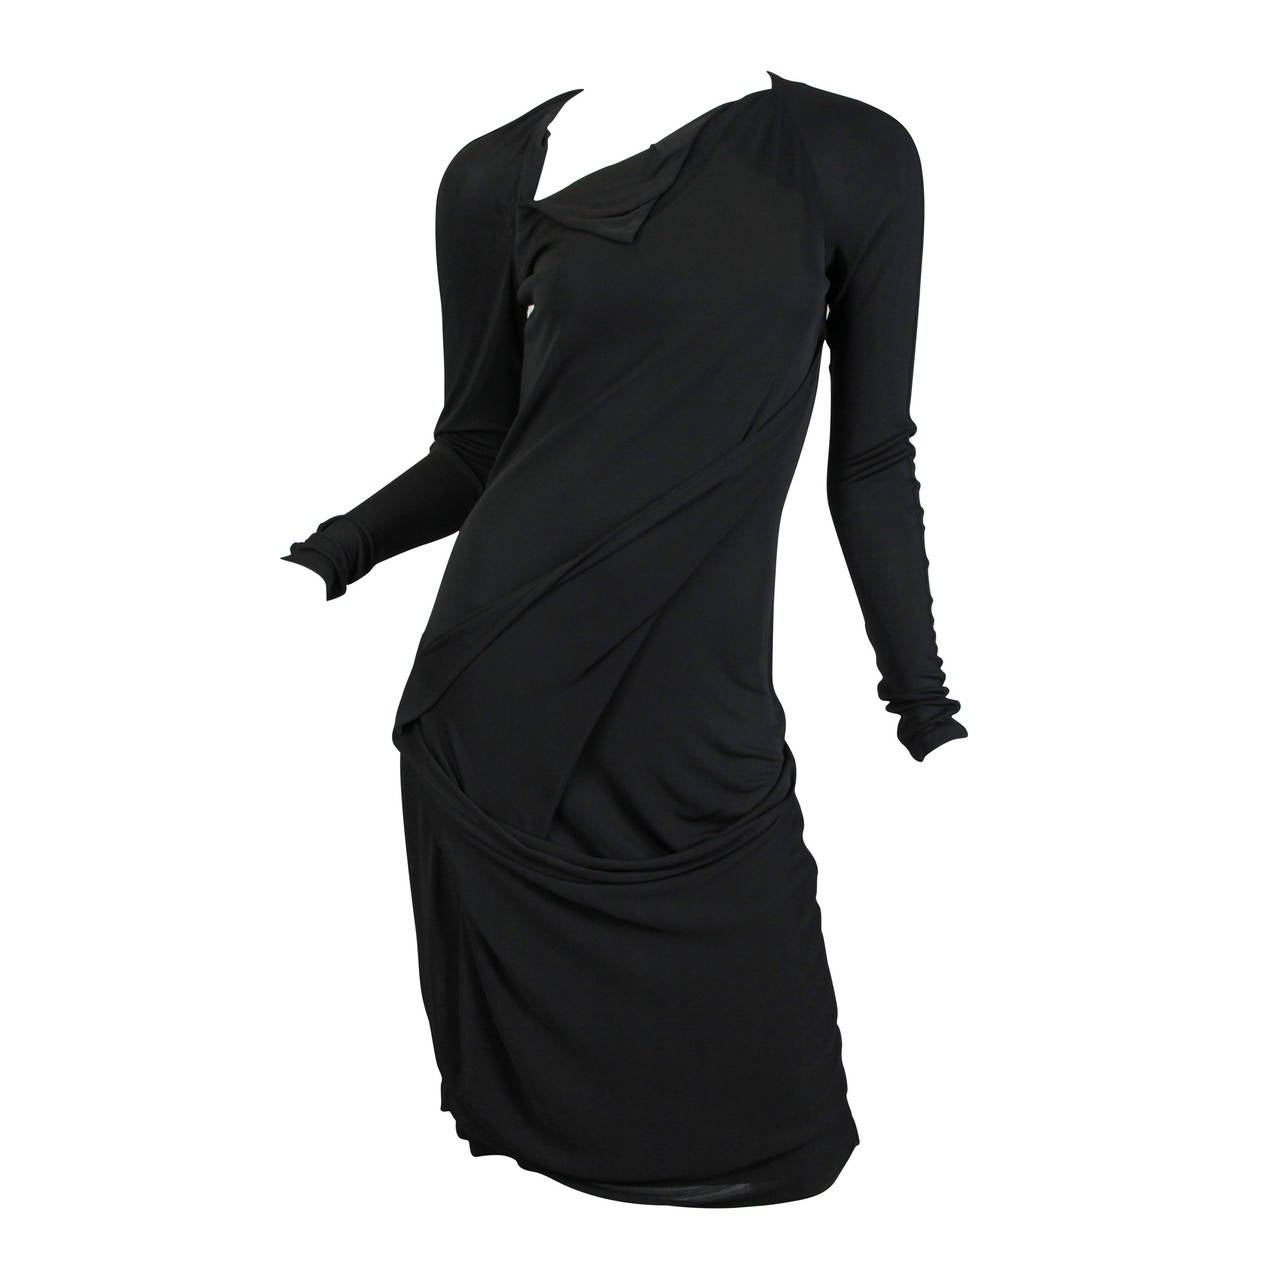 Martin Margiela Black Draped Jersey Dress